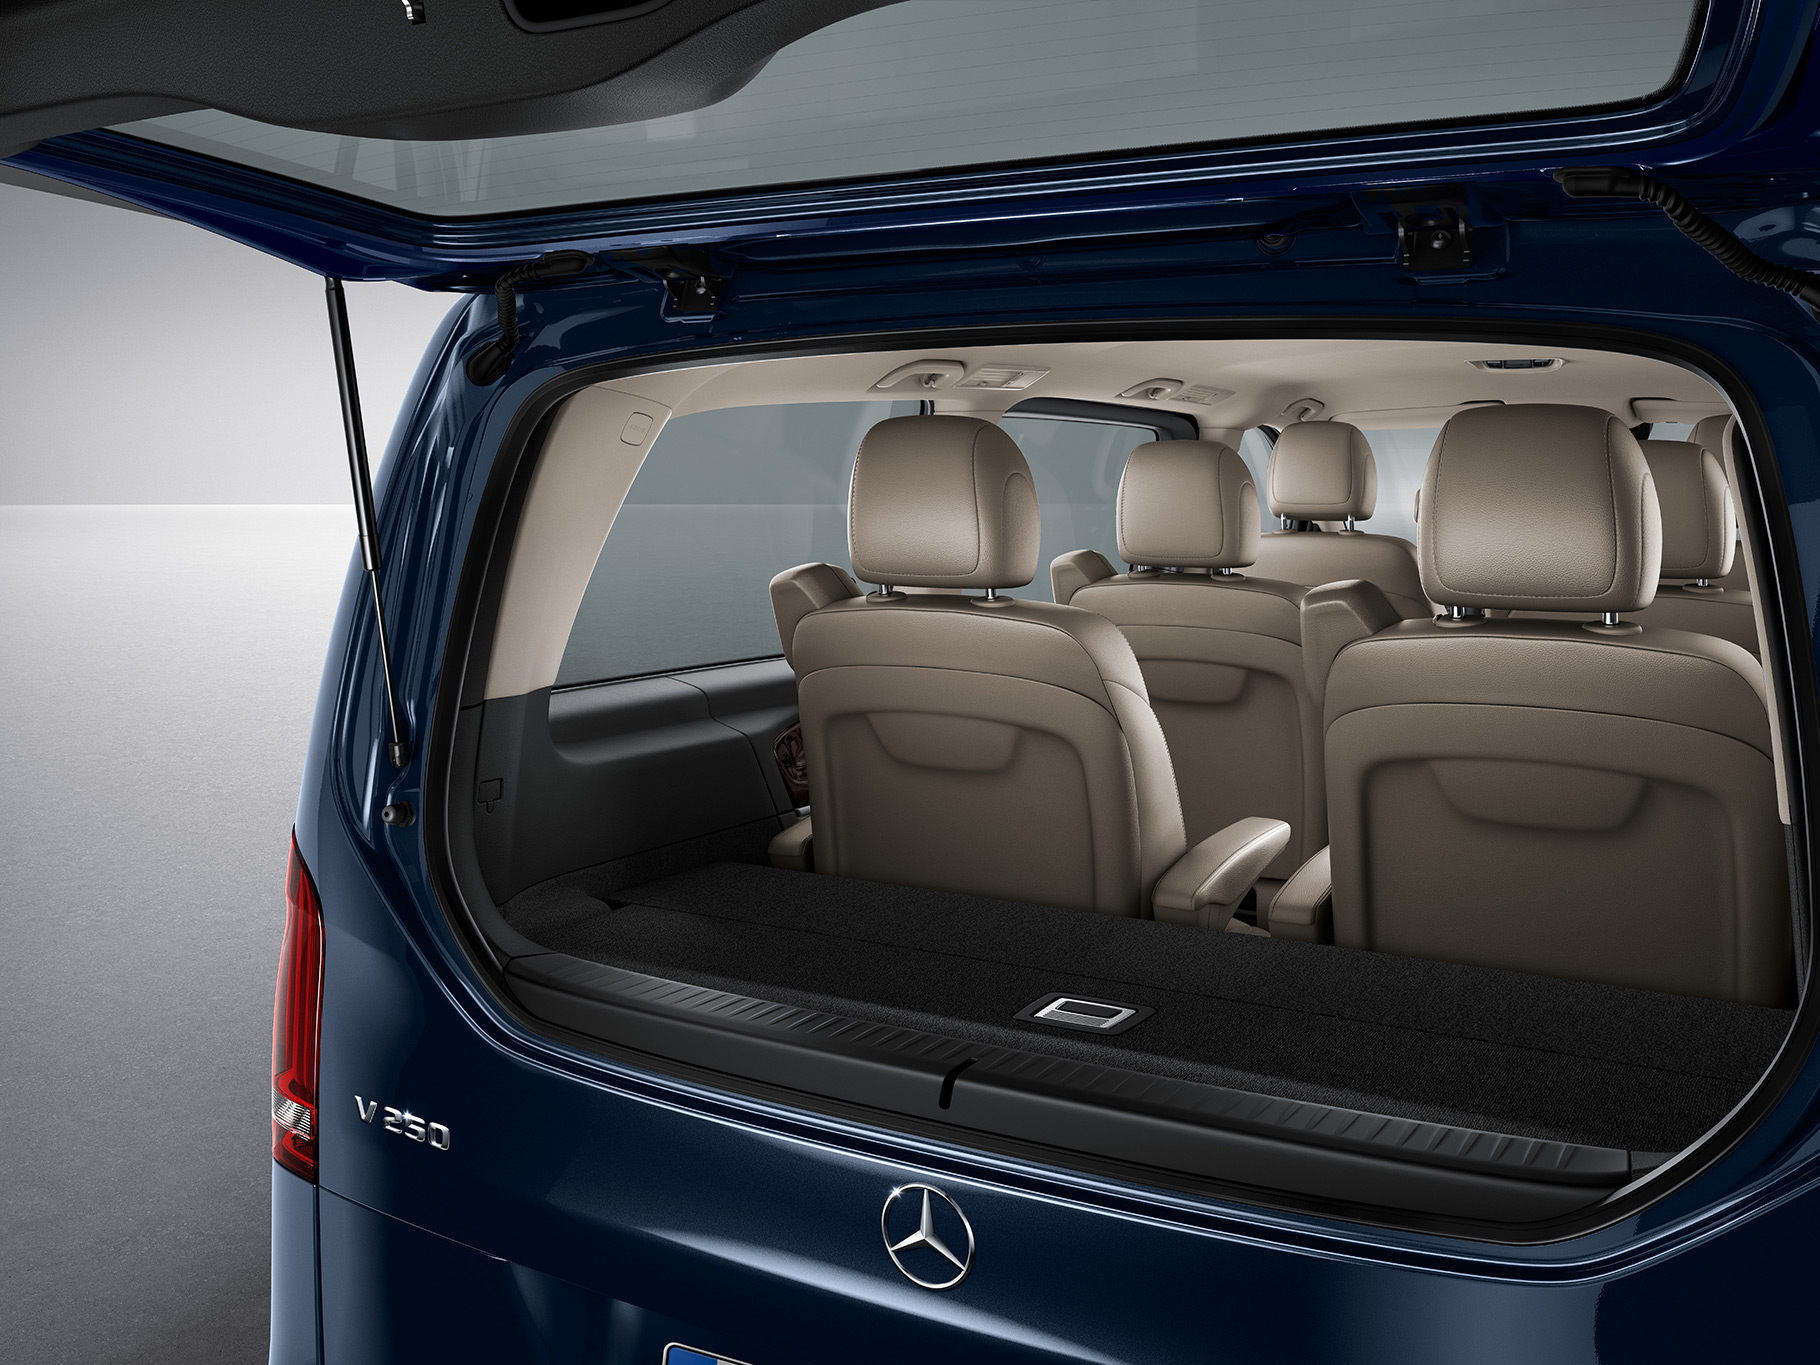 mercedes benz v class 2017 standard in egypt new car prices specs reviews photos yallamotor. Black Bedroom Furniture Sets. Home Design Ideas